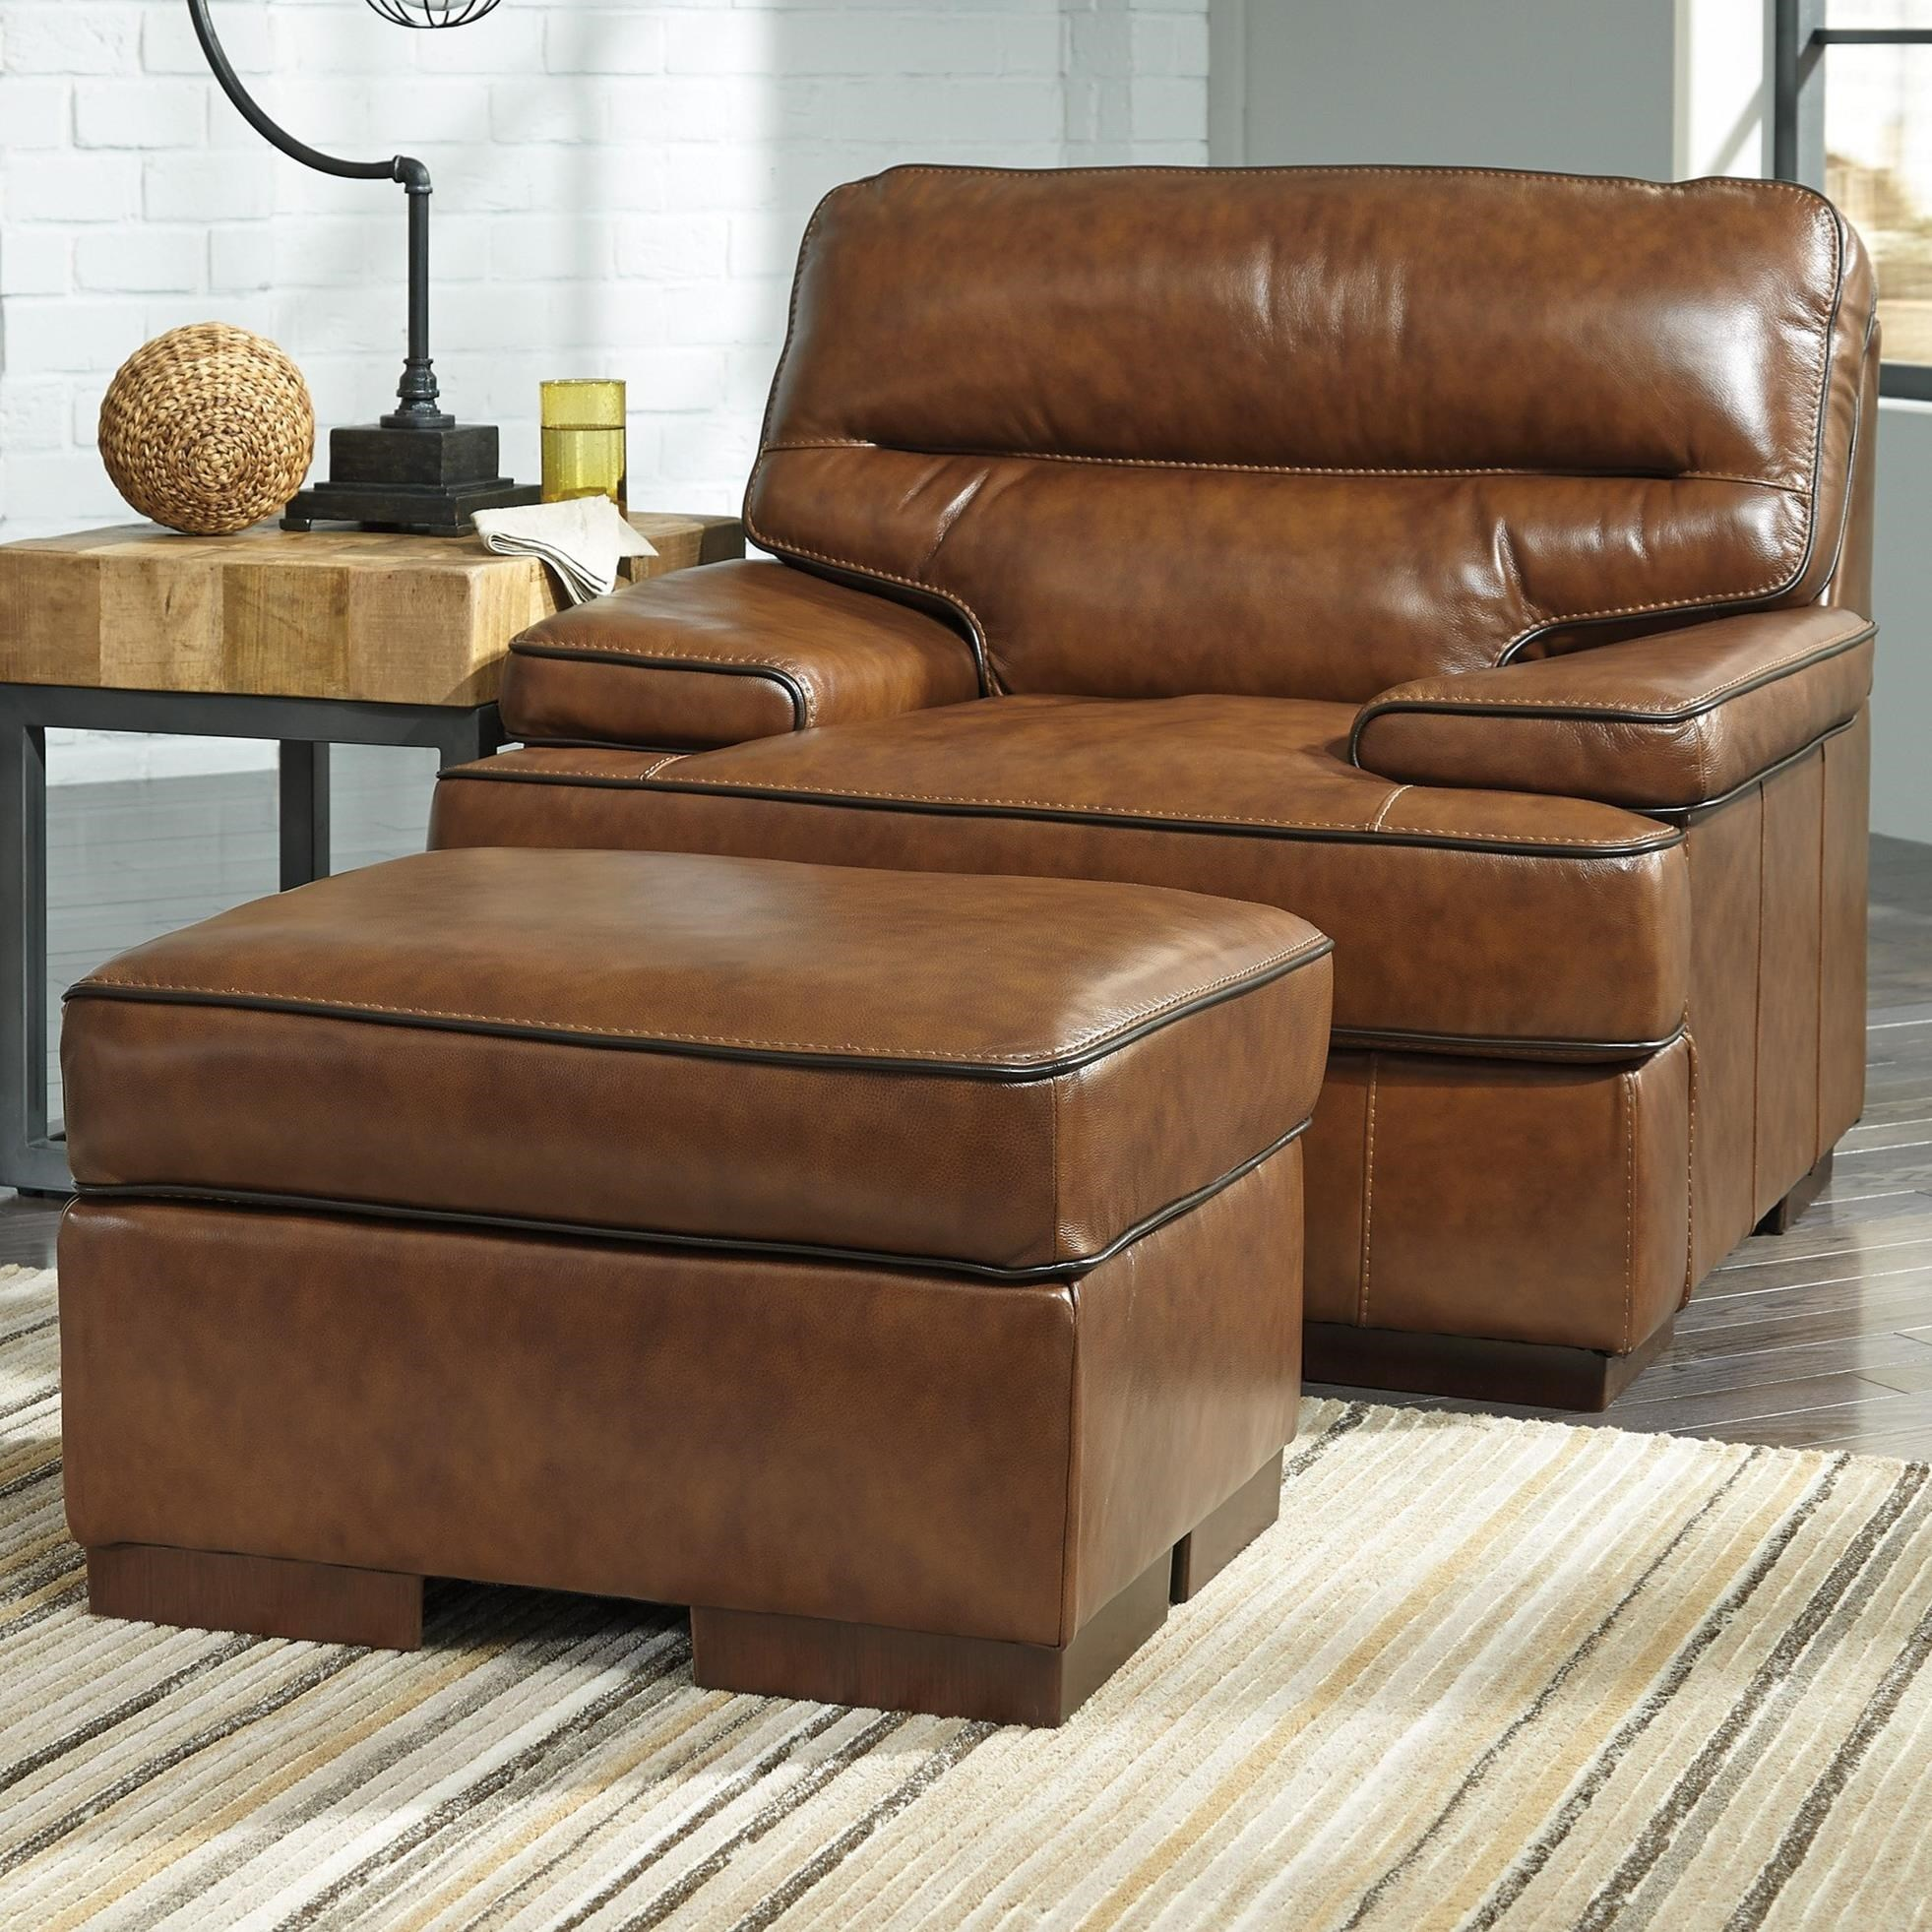 Signature Design By Ashley Palner Contemporary Leather Match Chair Ottoman Value City